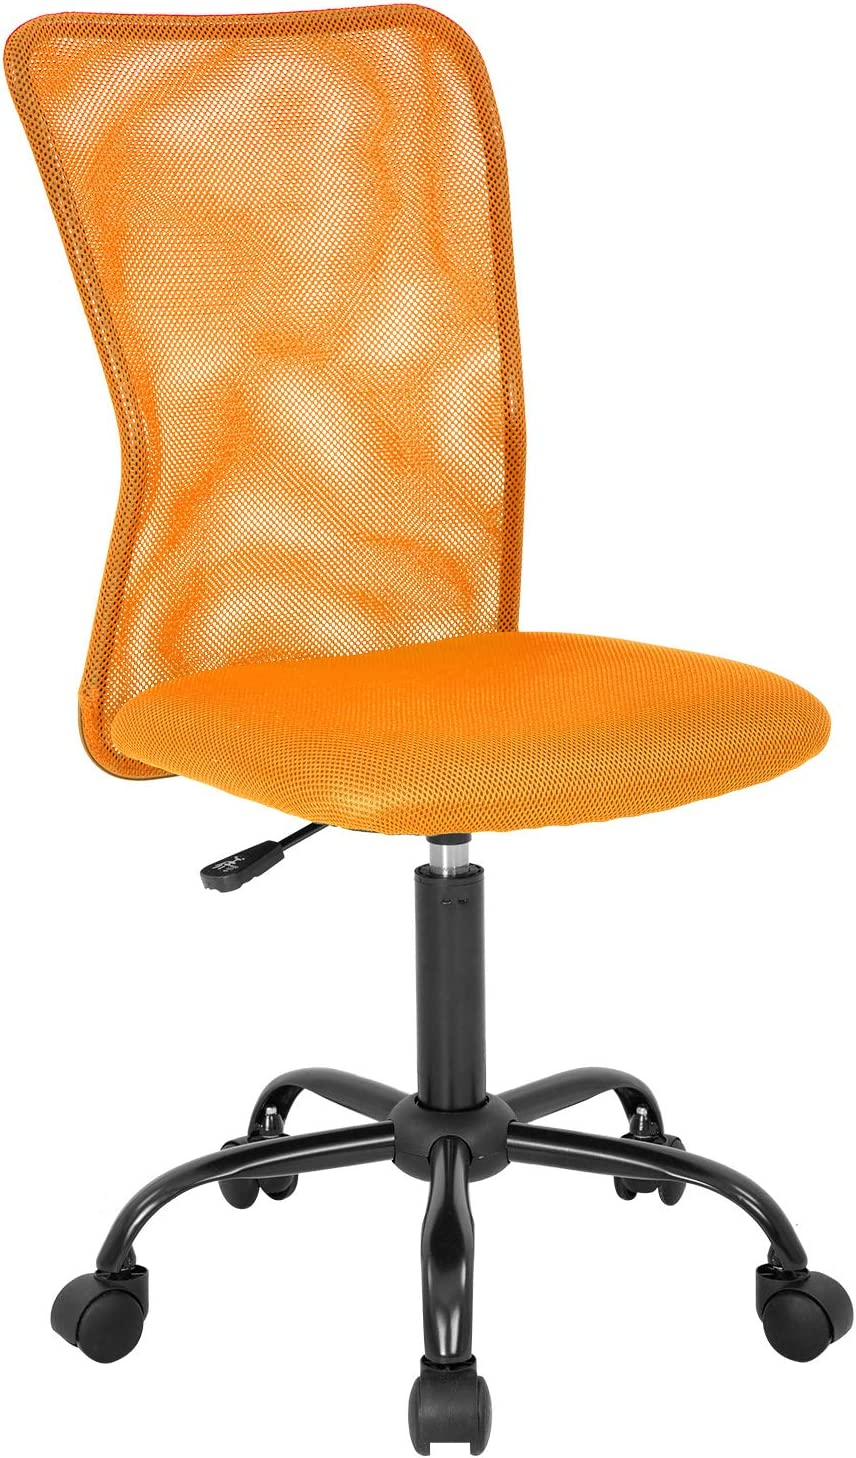 Office Chair Mesh Desk Chair Ergonomic Computer Chair with Lumbar Support Adjustable Swivel Rolling Task Chair for Men(Orange)